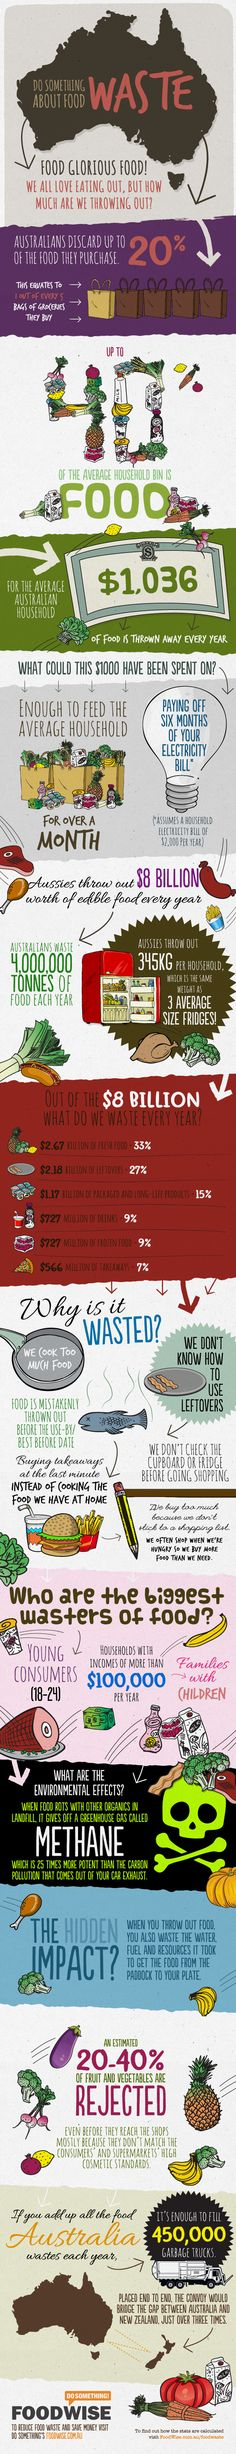 Do Something About Food Waste